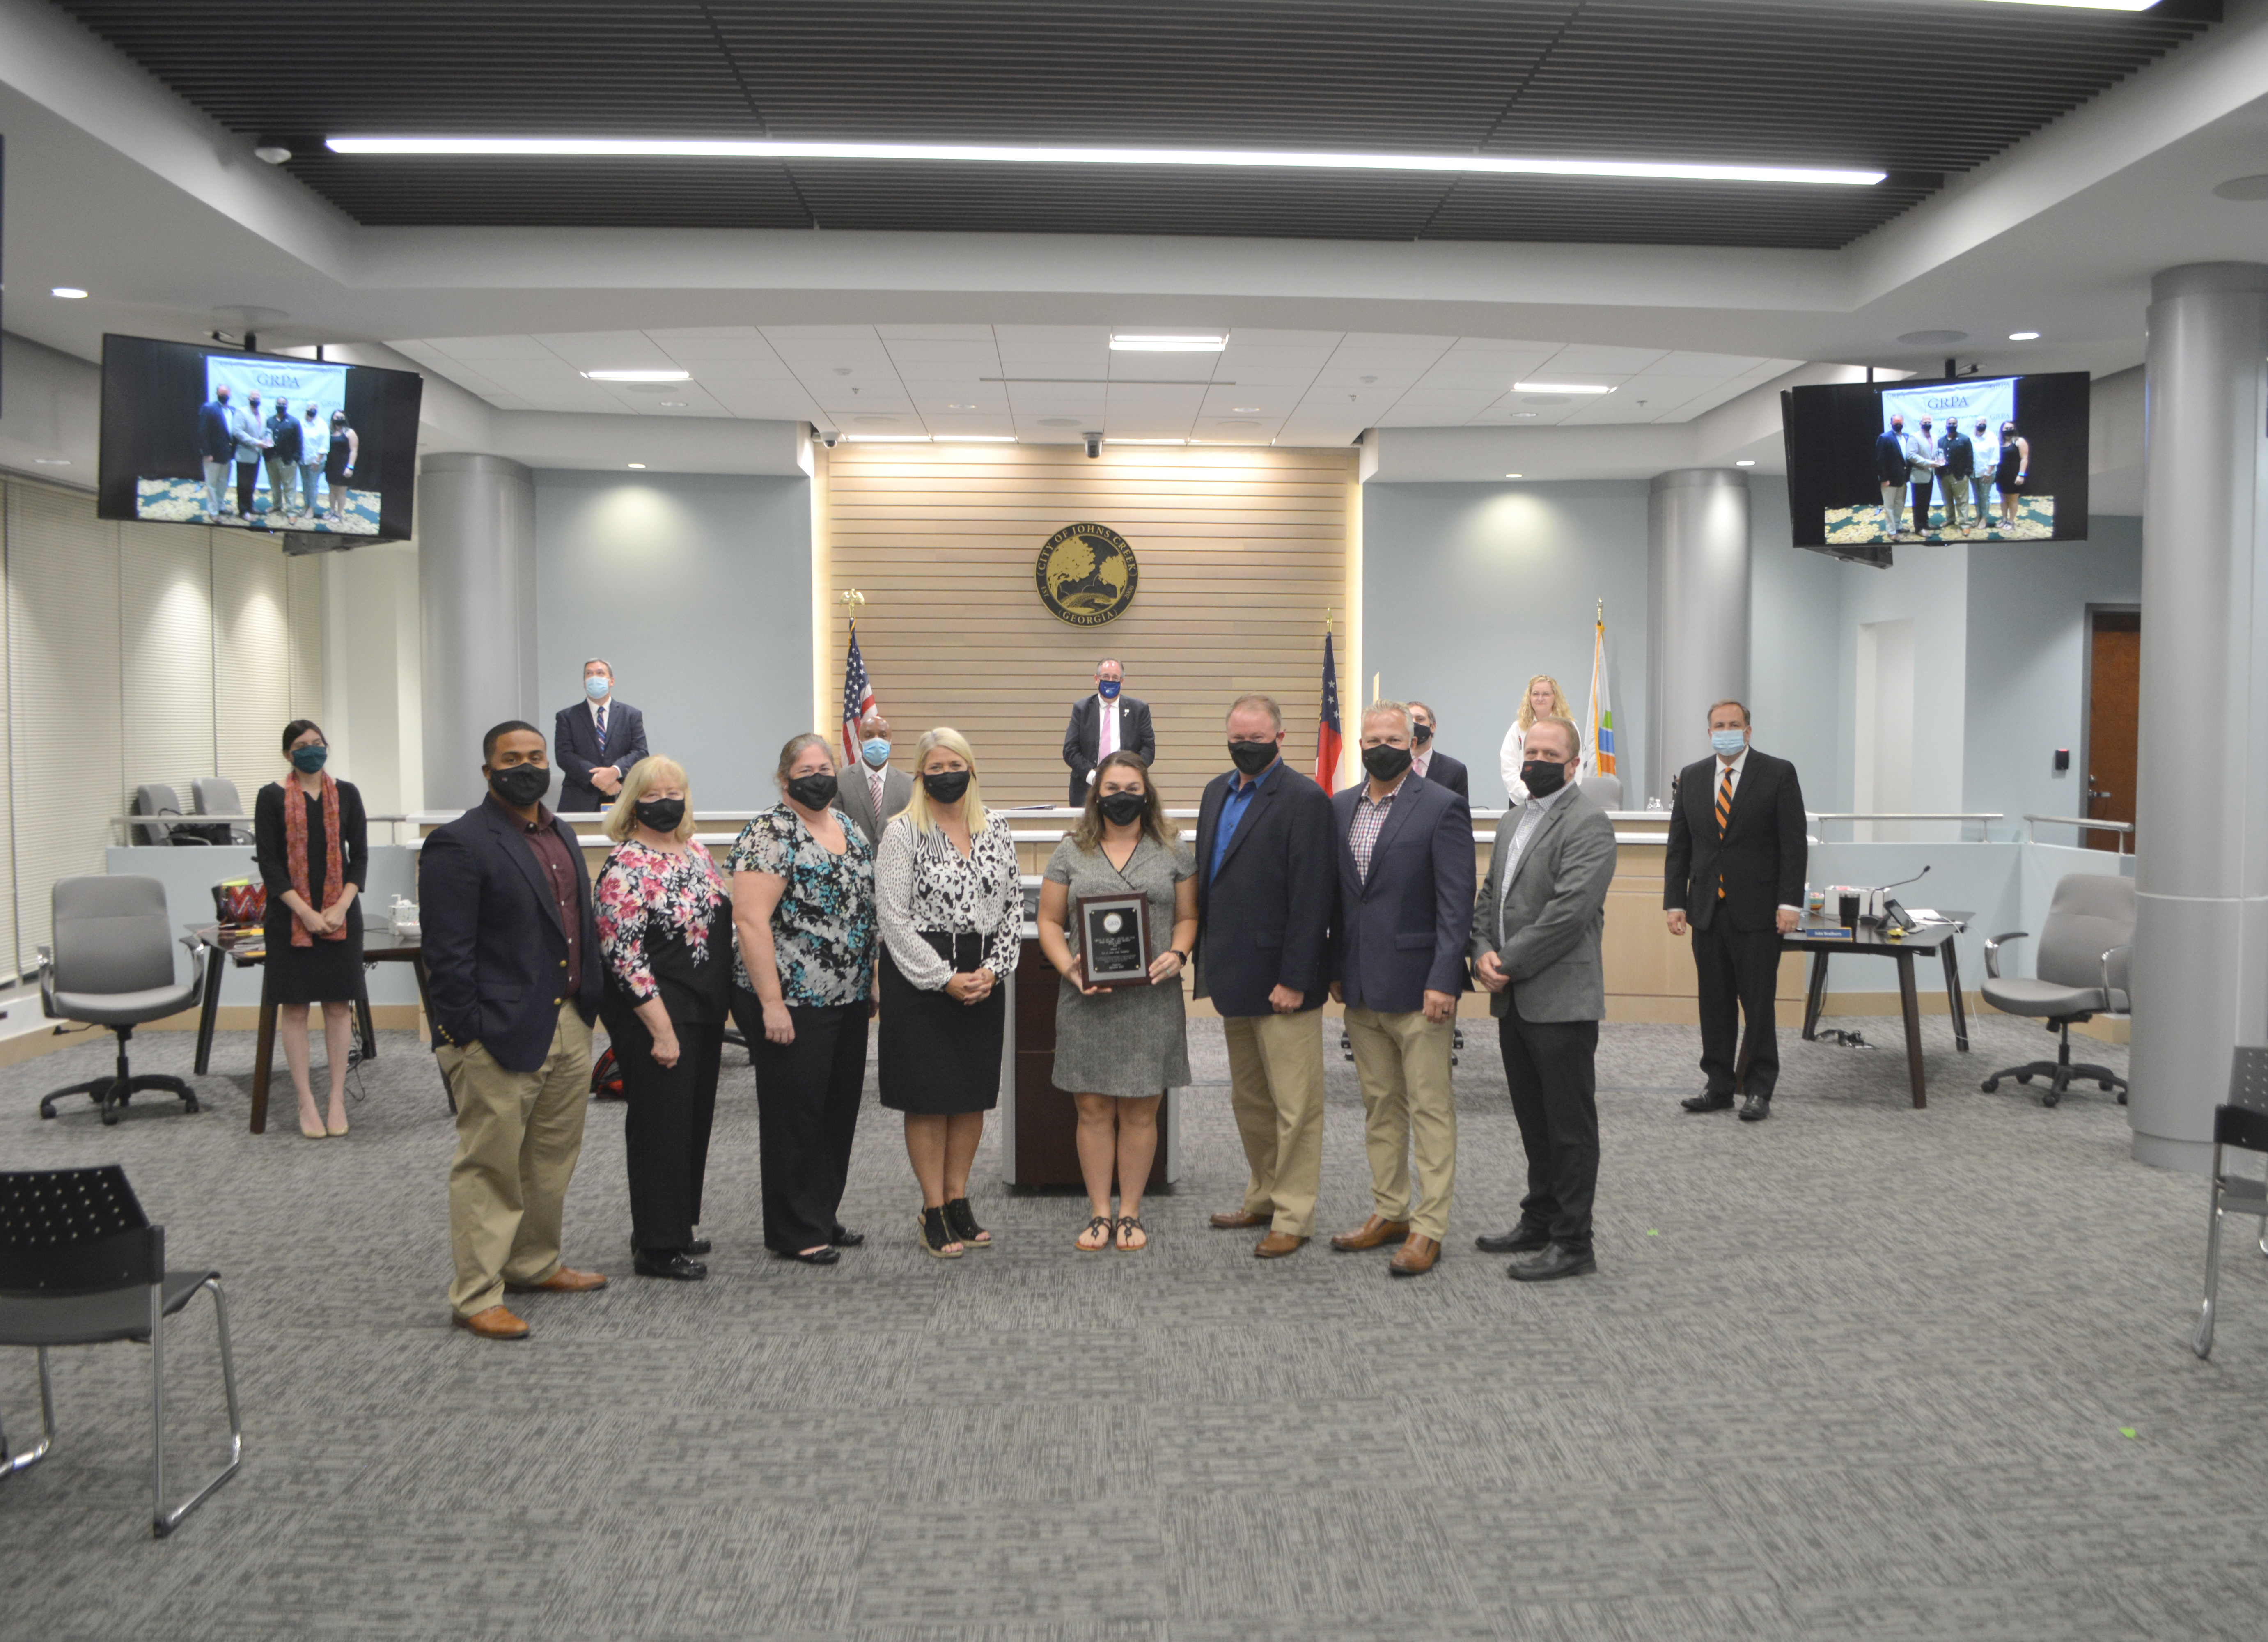 Johns Creek receives multiple awards from Georgia Recreation and Parks Association